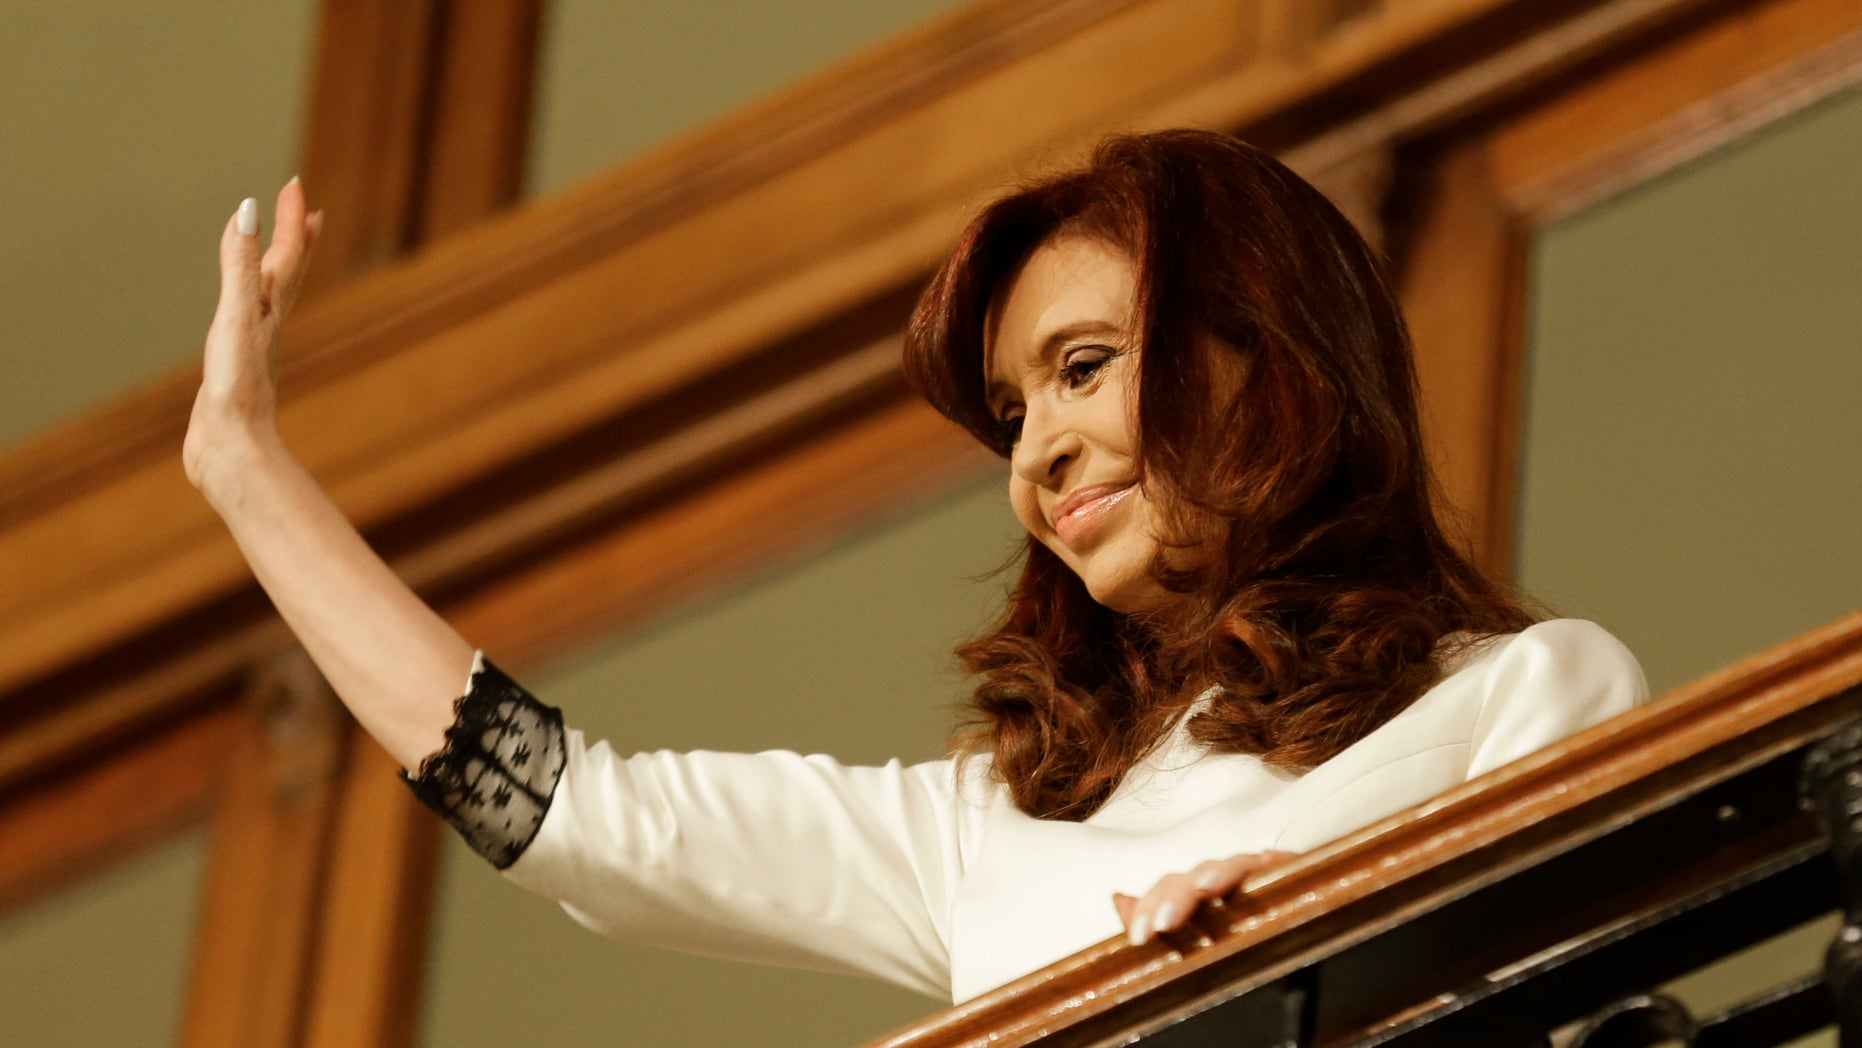 July 31, 2014 - FILE photo of Argentine President Cristina Fernandez after giving a second speech at Casa Rosada Presidential Palace in Buenos Aires, Argentina. Health officials in Argentina said Sunday that President Fernandez has been hospitalized with an infectious fever.